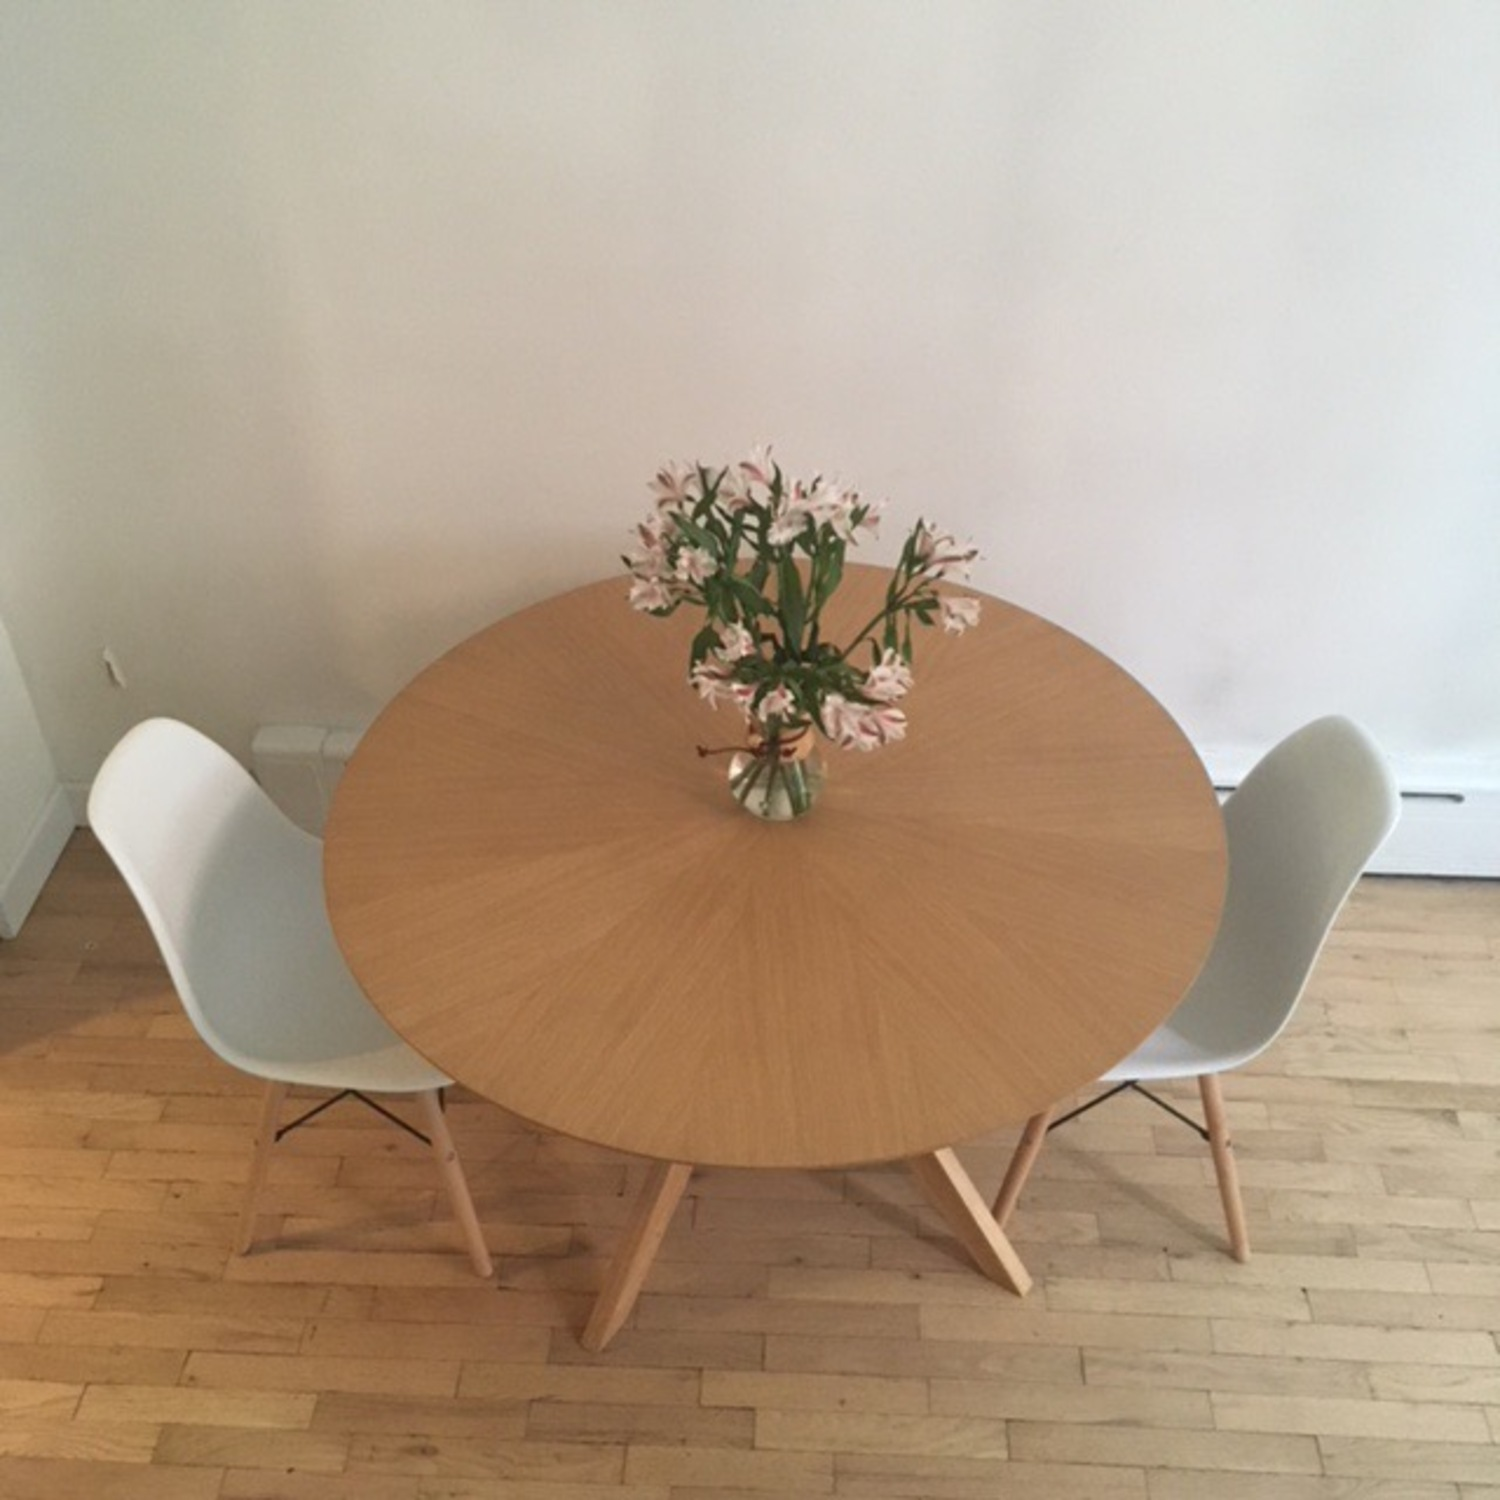 Scandinavian Stlye Dining Table and Chairs - image-9